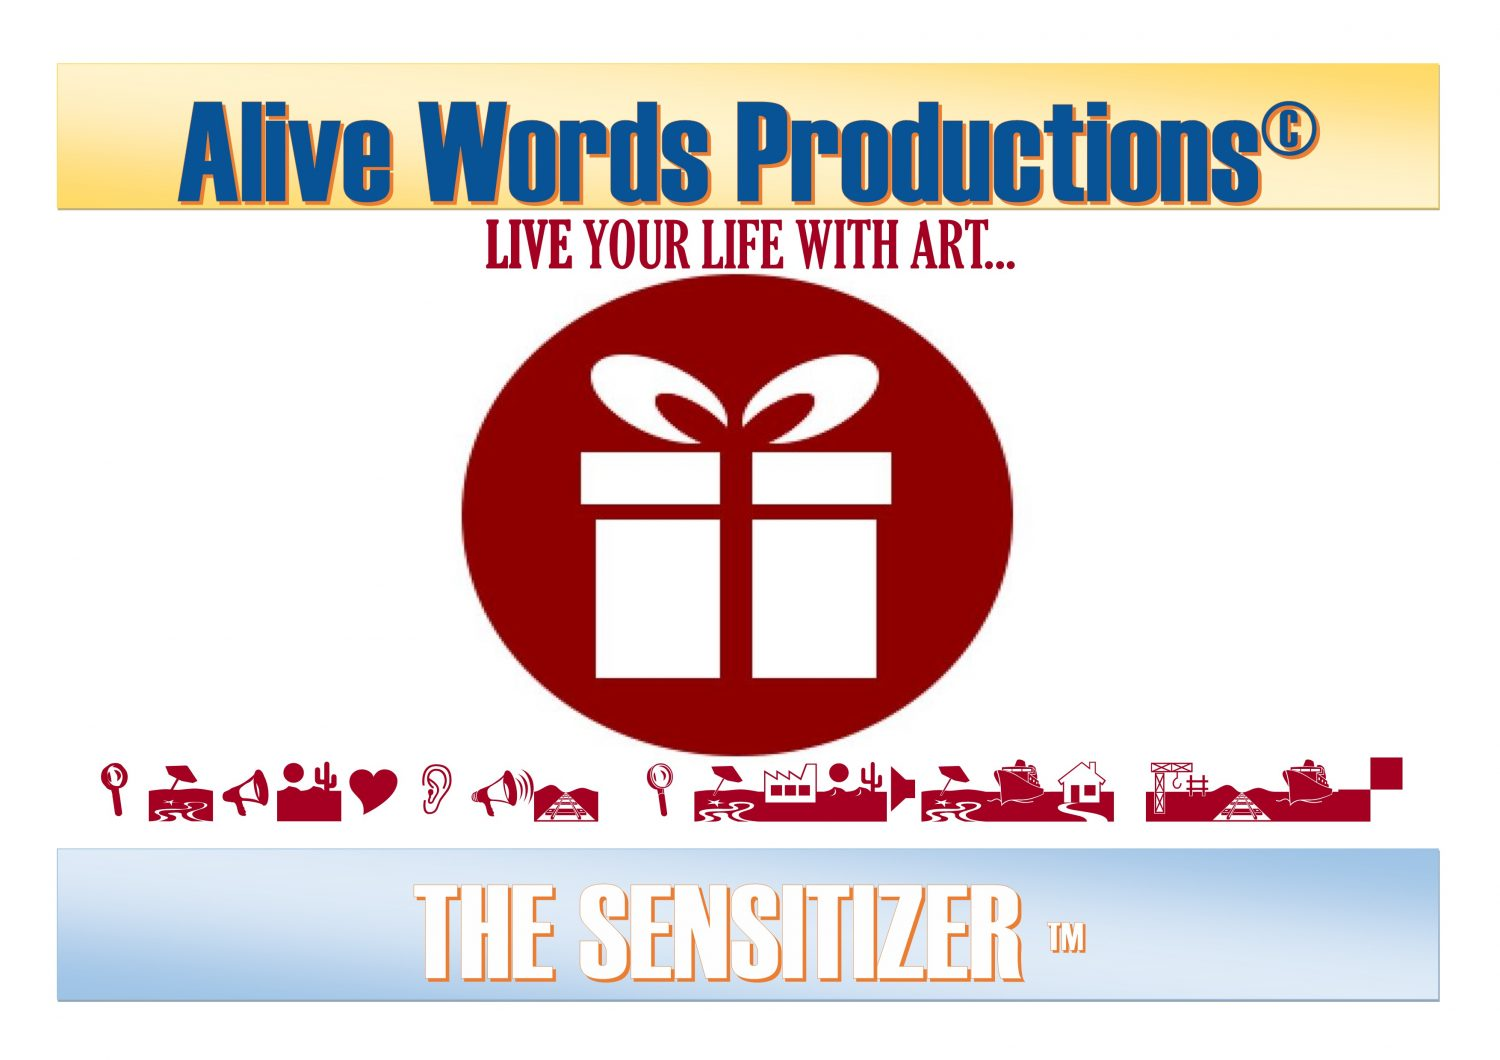 Alive Words Productions